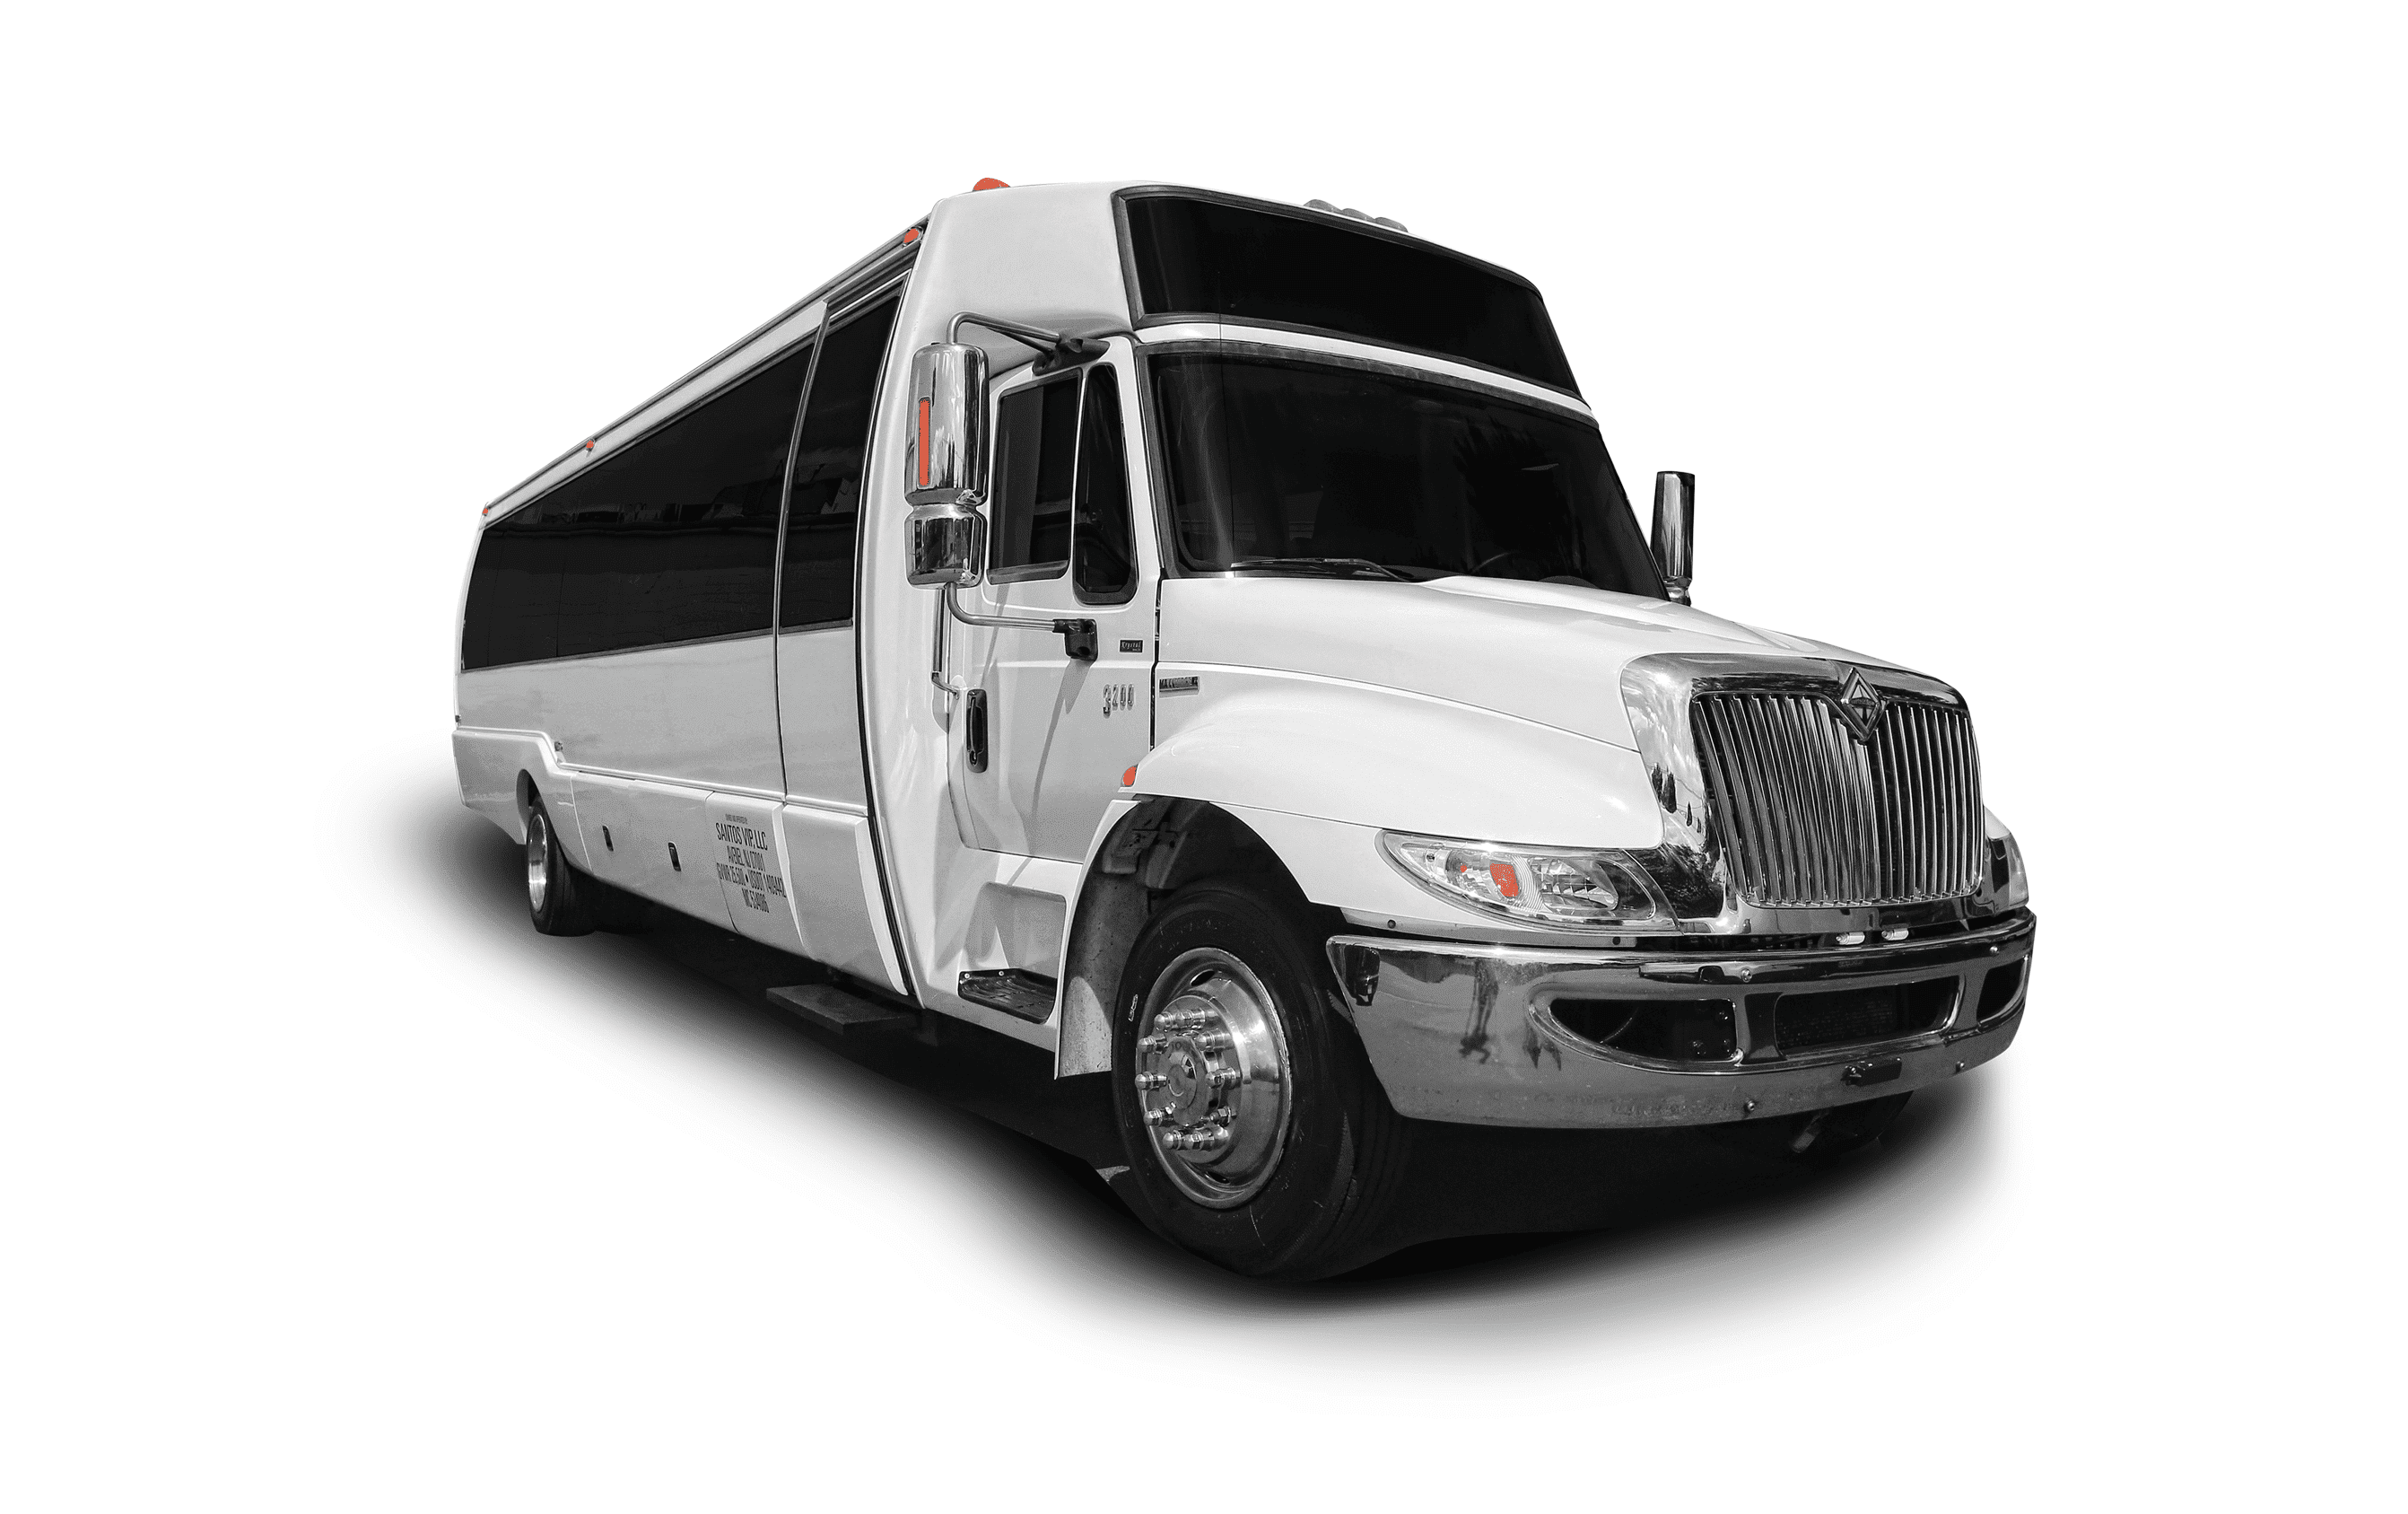 28 passenger VIP Limo Coach Party Bus rental for Casino Limo Service in NJ - NY- PA and CT.